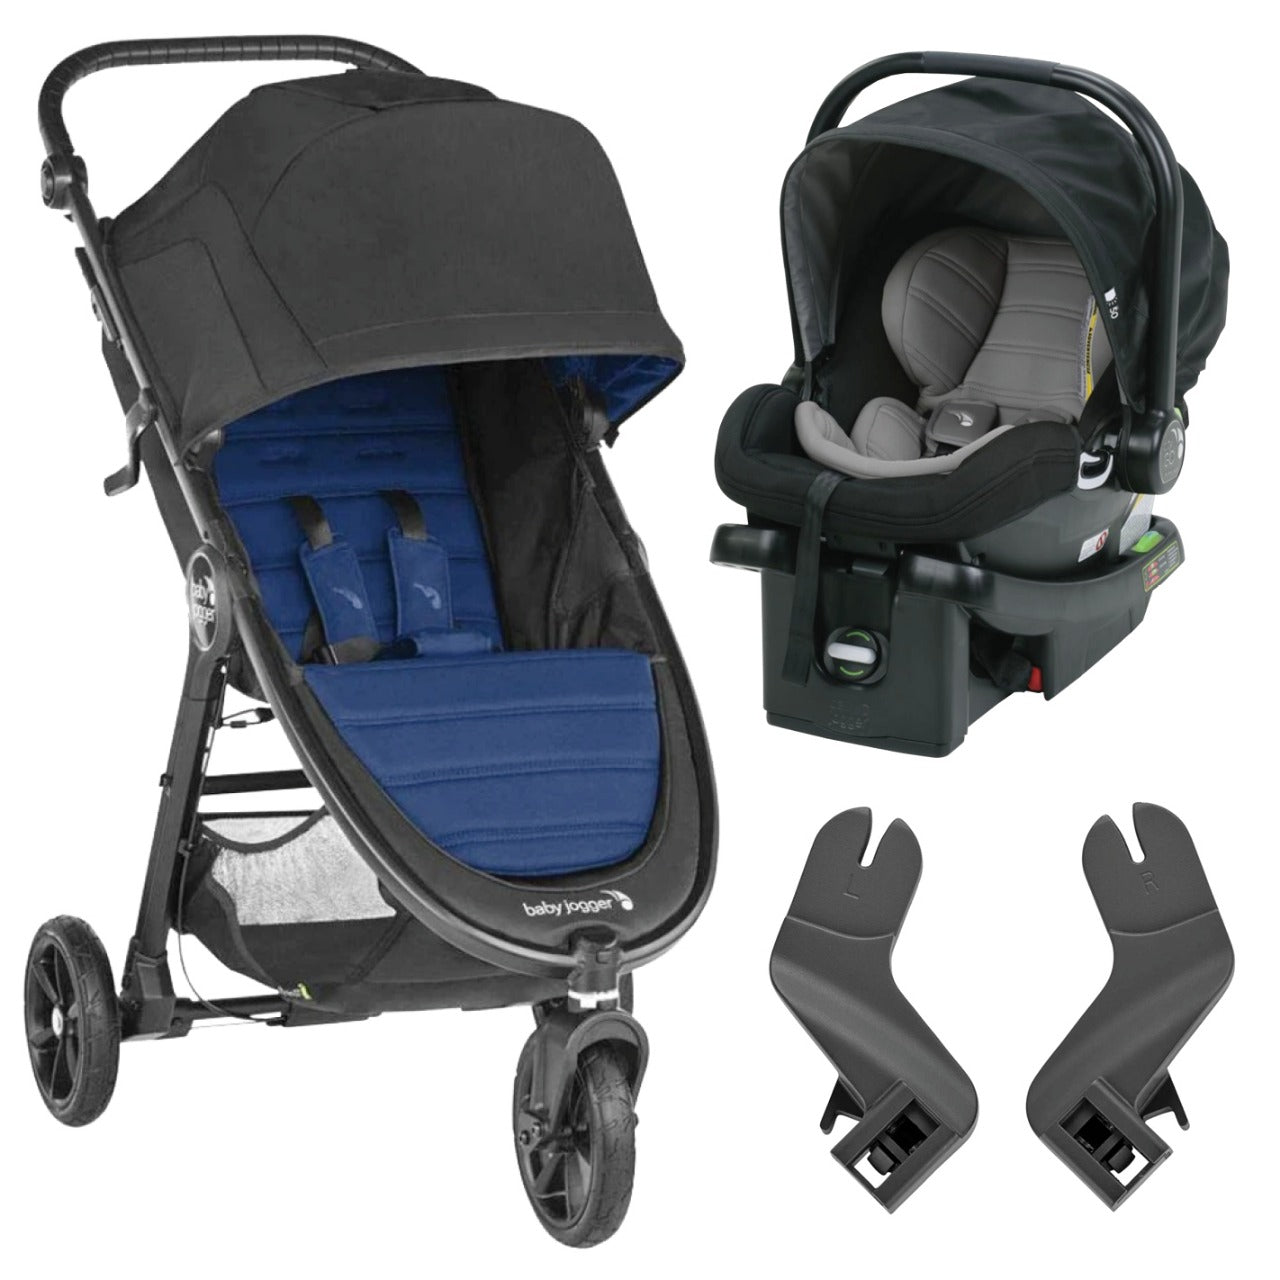 Baby Jogger Travel System - City Mini GT 2 Windsor